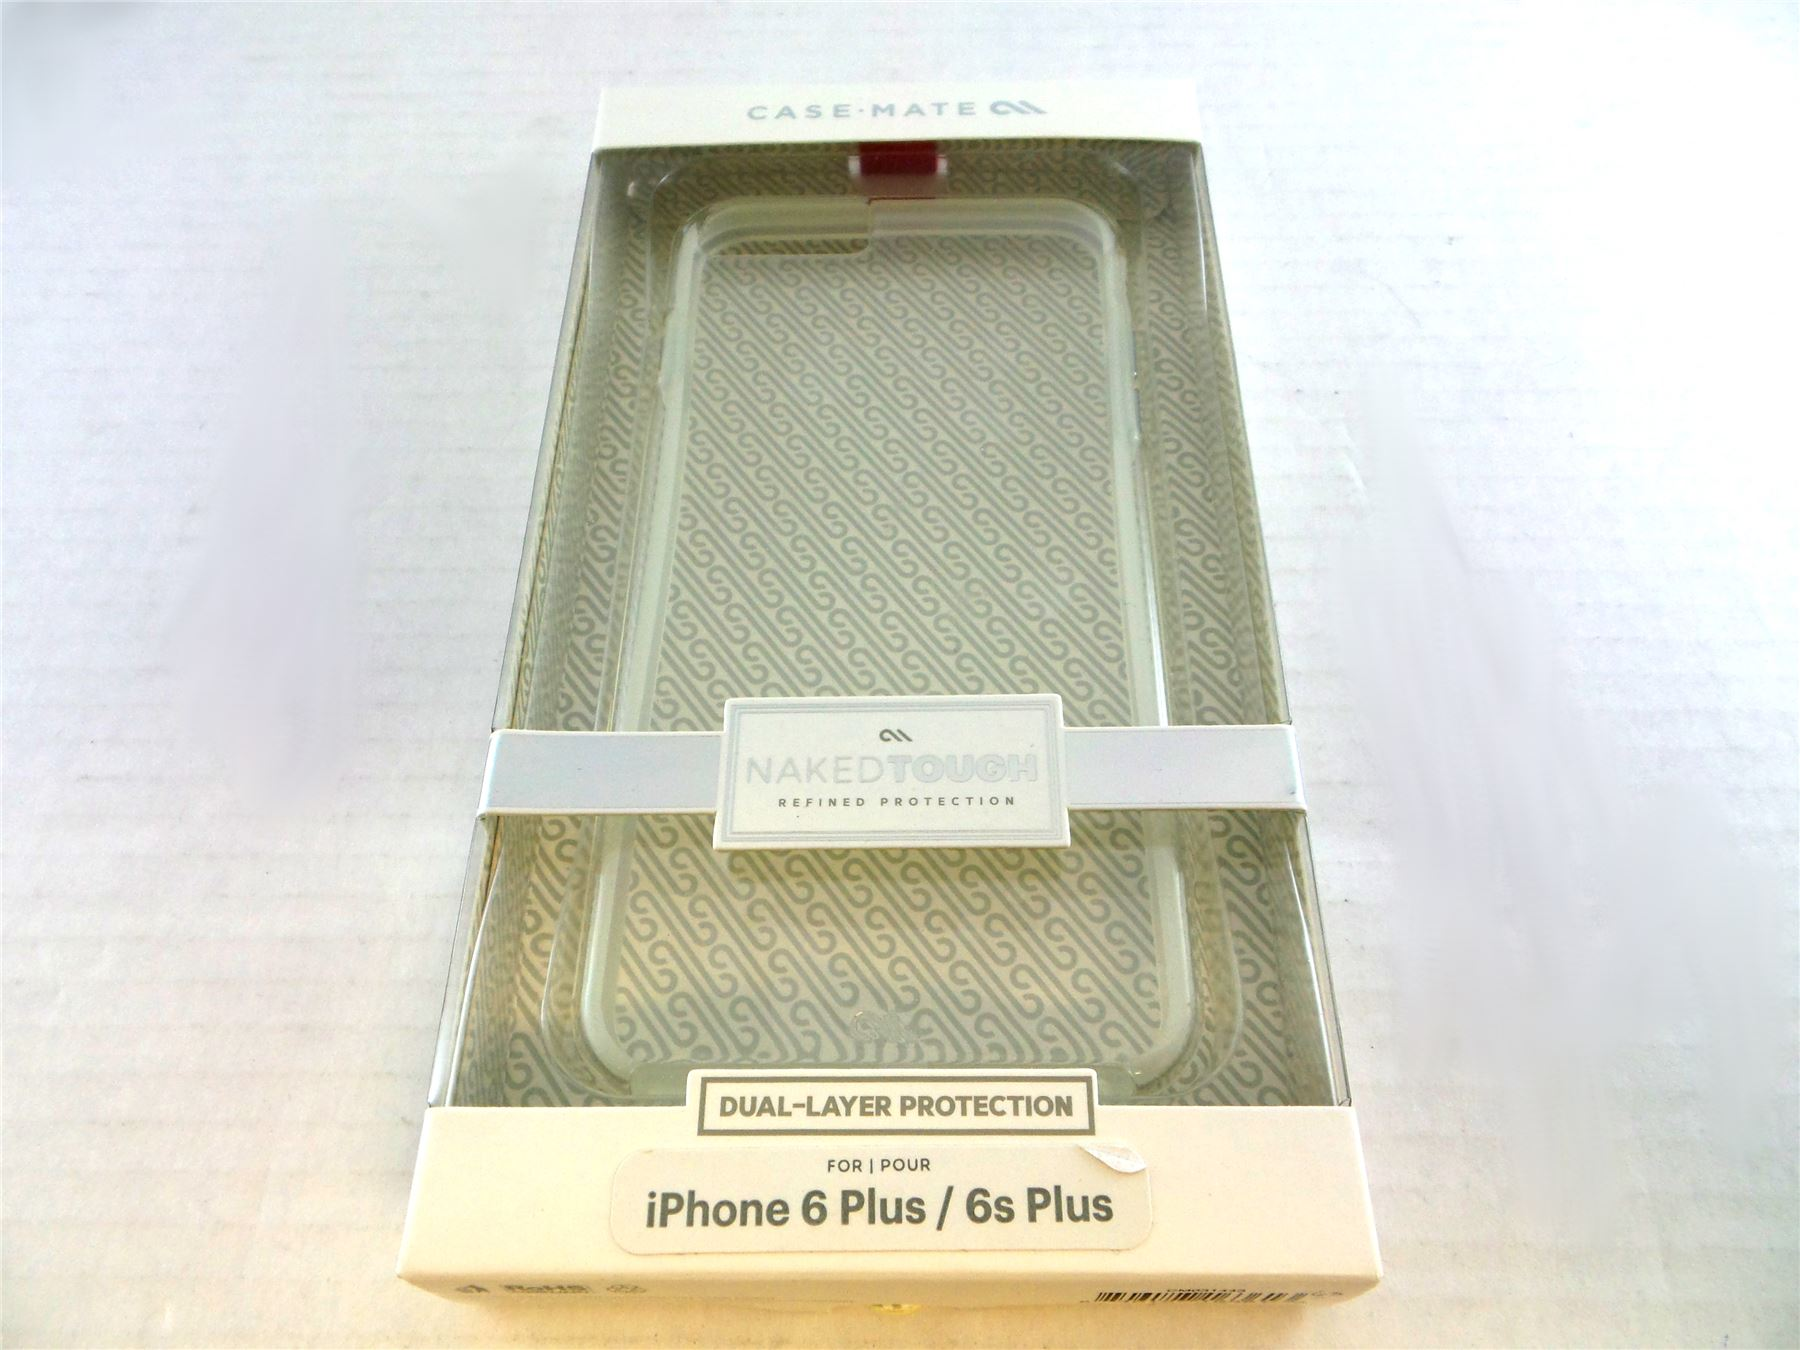 Medical research and corporate technology case mate iphone 4 case - Best Images About Management Resume Templates Samples On Business Resume Templates Ebay